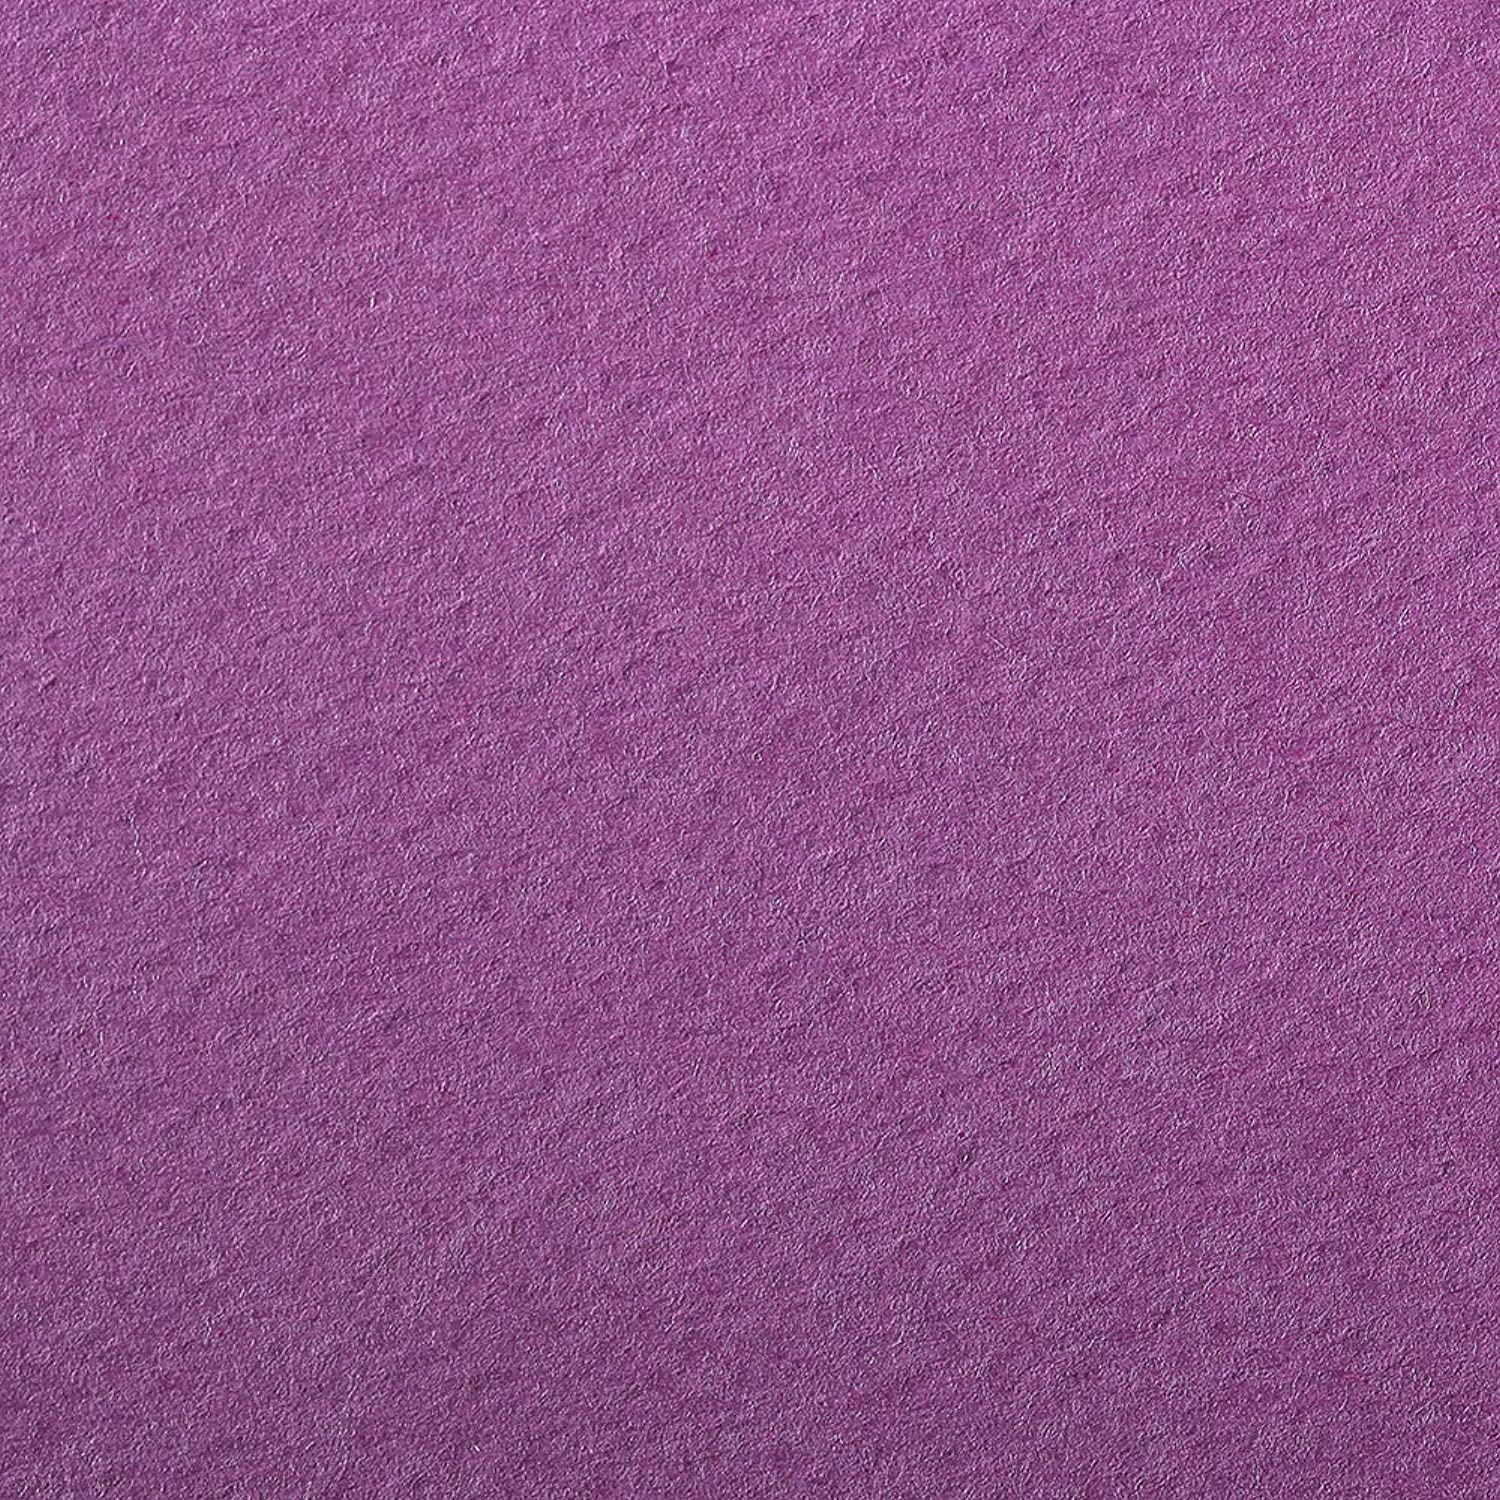 Clairefontaine Etival Coloured Grained Drawing Paper, 160 g, 50 x 65 cm  purple, Pack of 24 Sheets